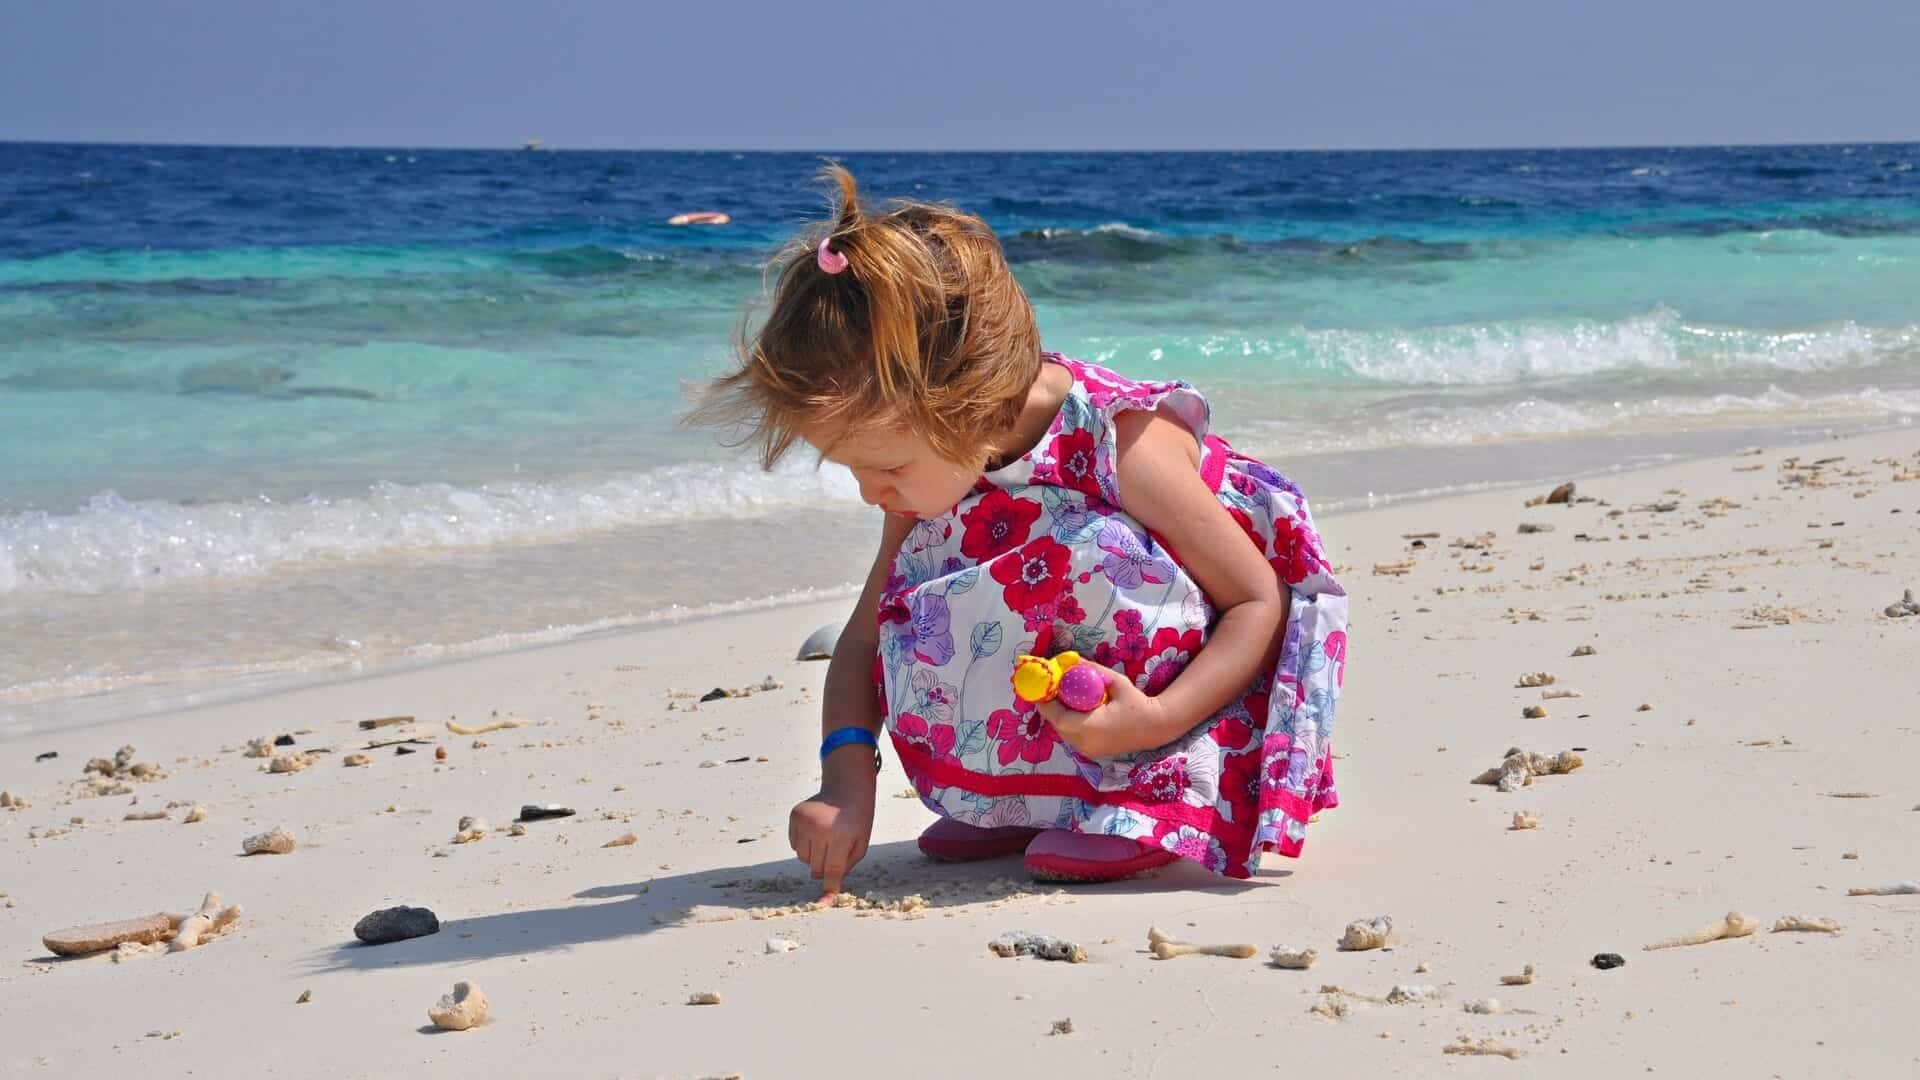 A child collects seashells on the coast of the Maldives island